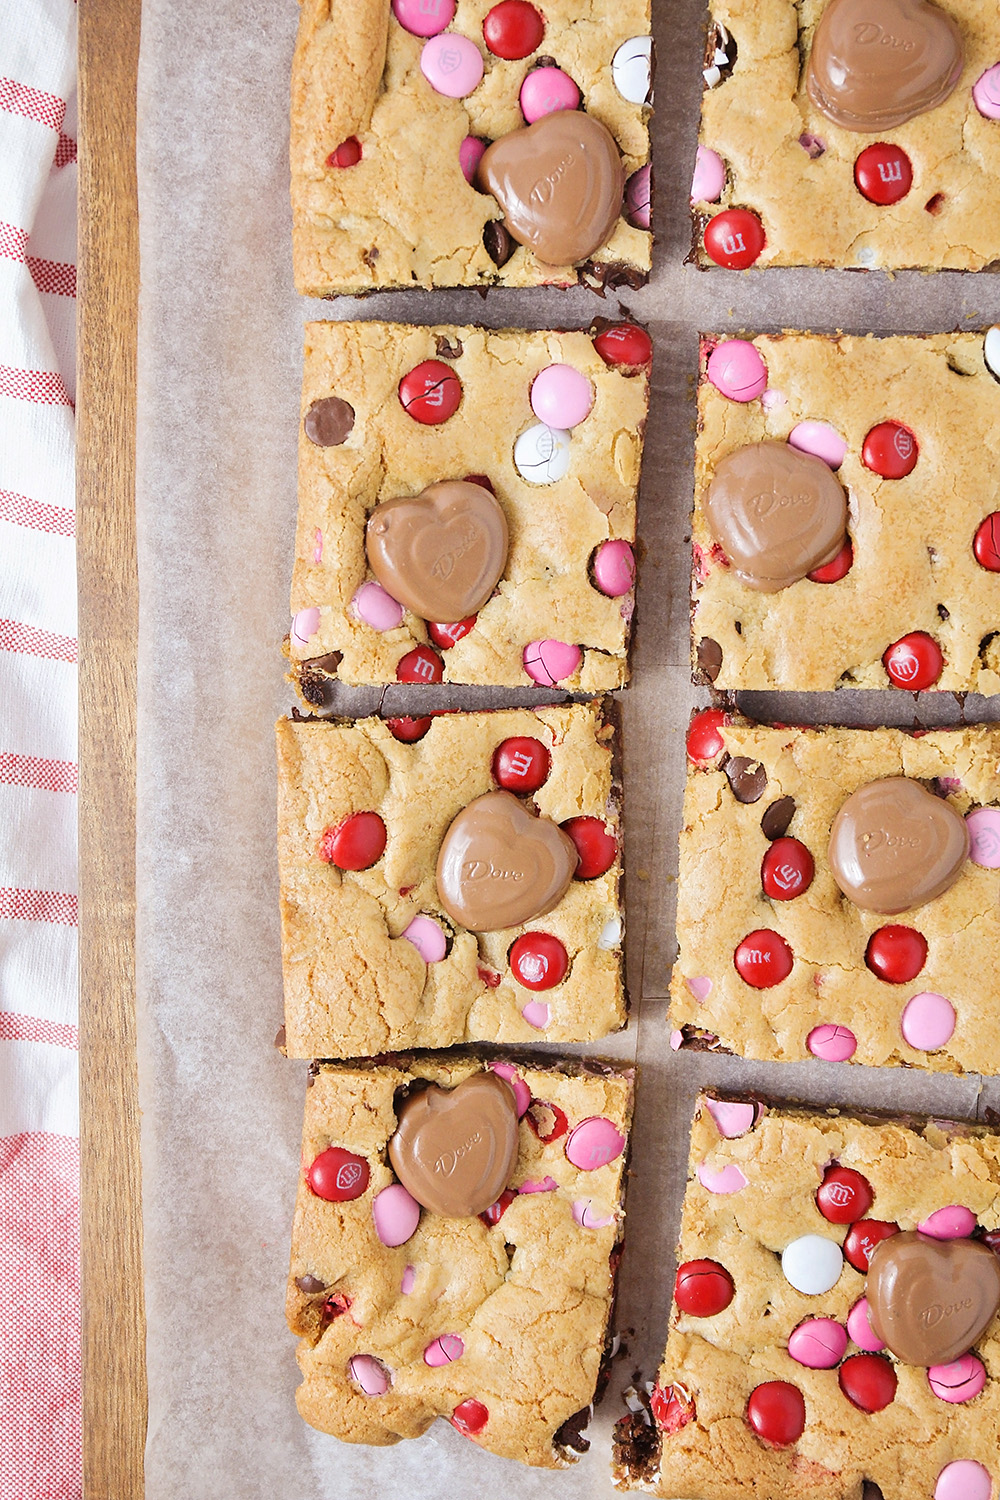 These adorable Valentine cookie bars are loaded with chocolate chips and M&M's. They're the perfect treat for your sweetheart!